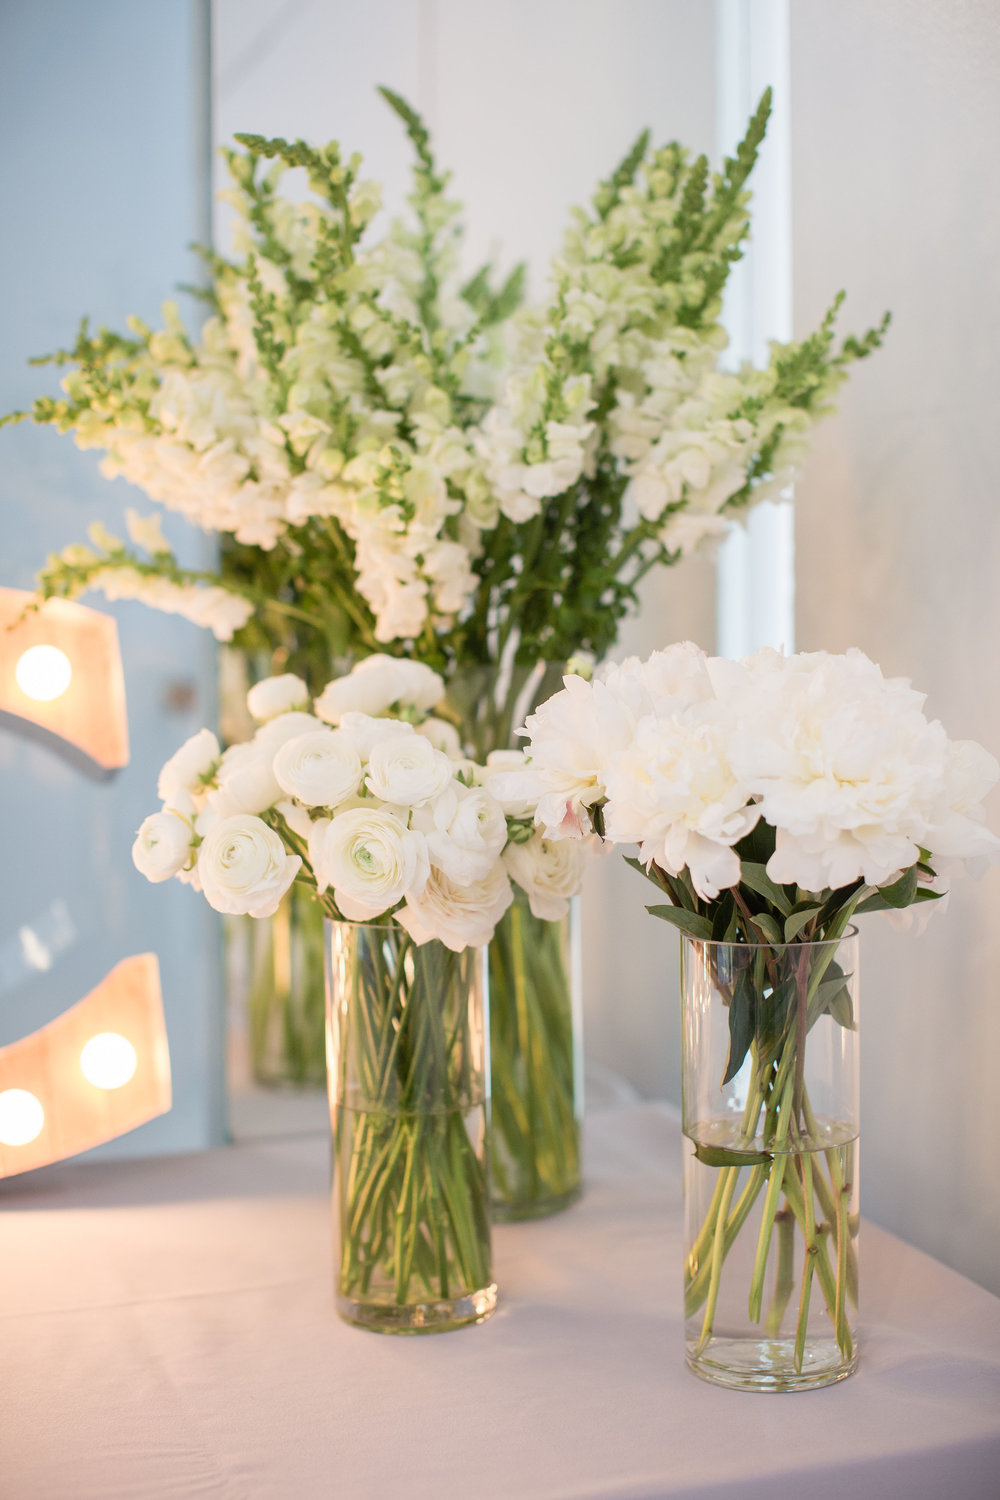 White peonies, ranunculus and snapdragons